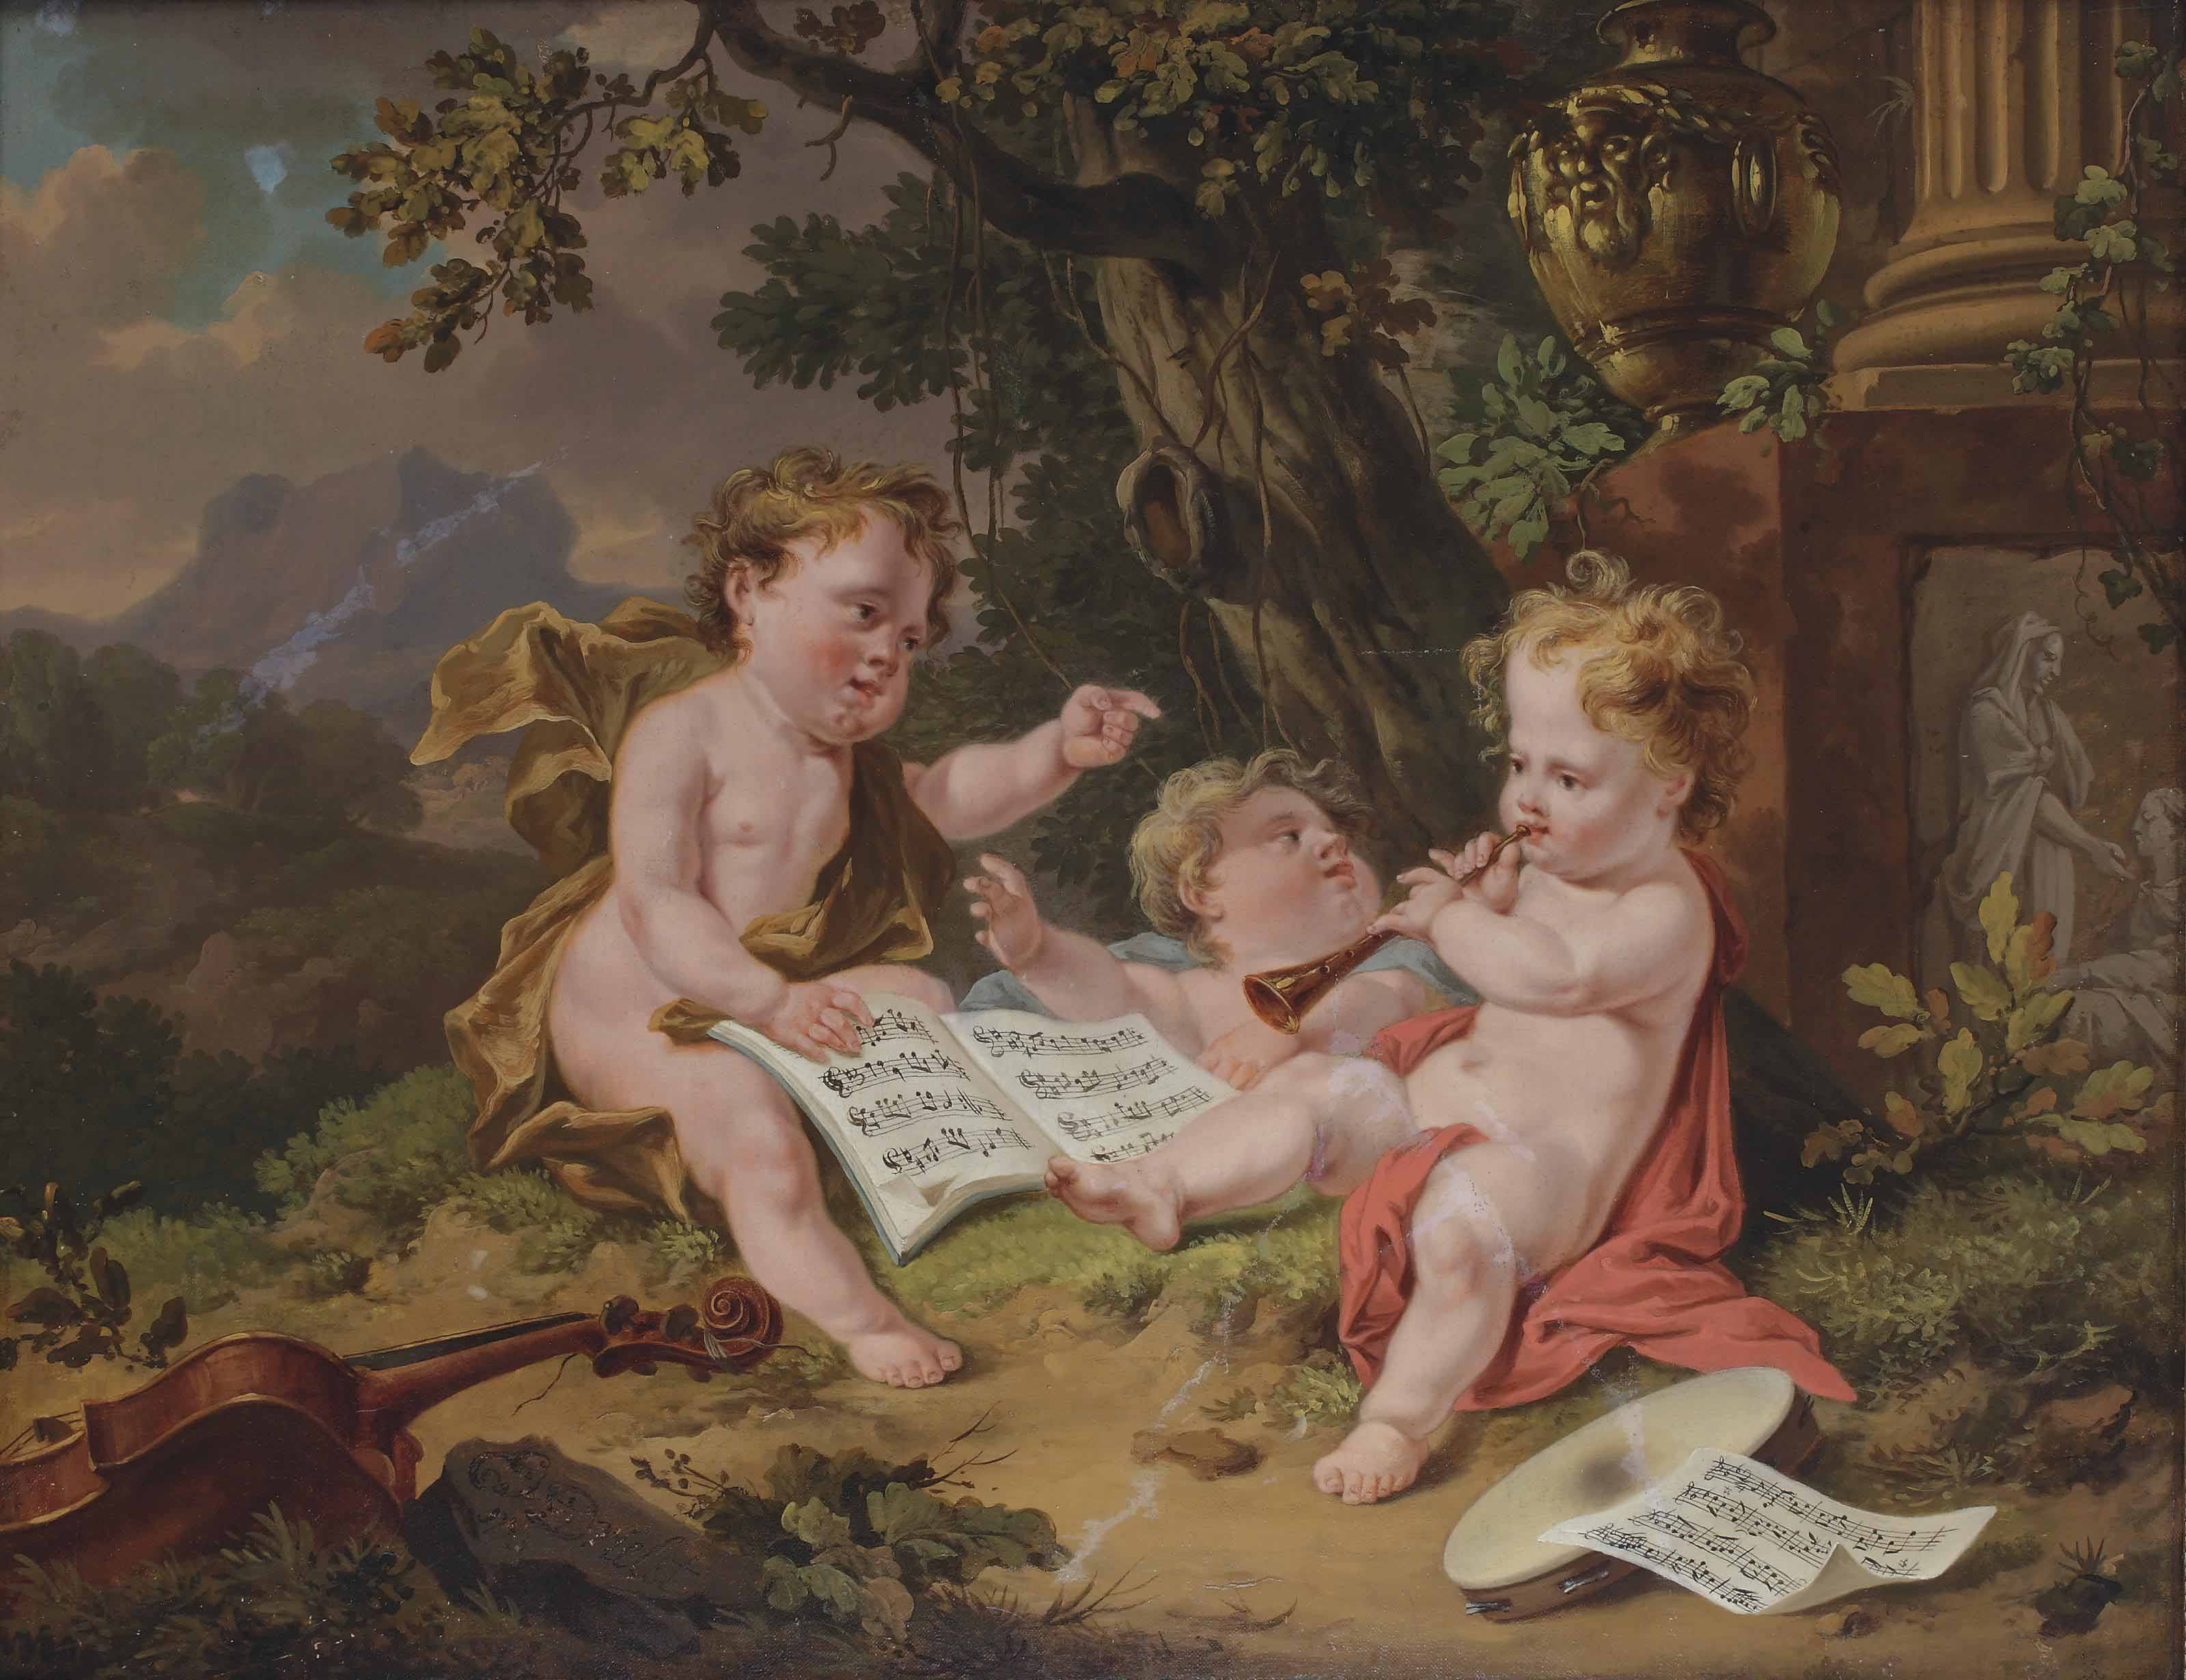 Three putti making music before a classical column with an urn and relief sculpture, a mountainous landscape beyond